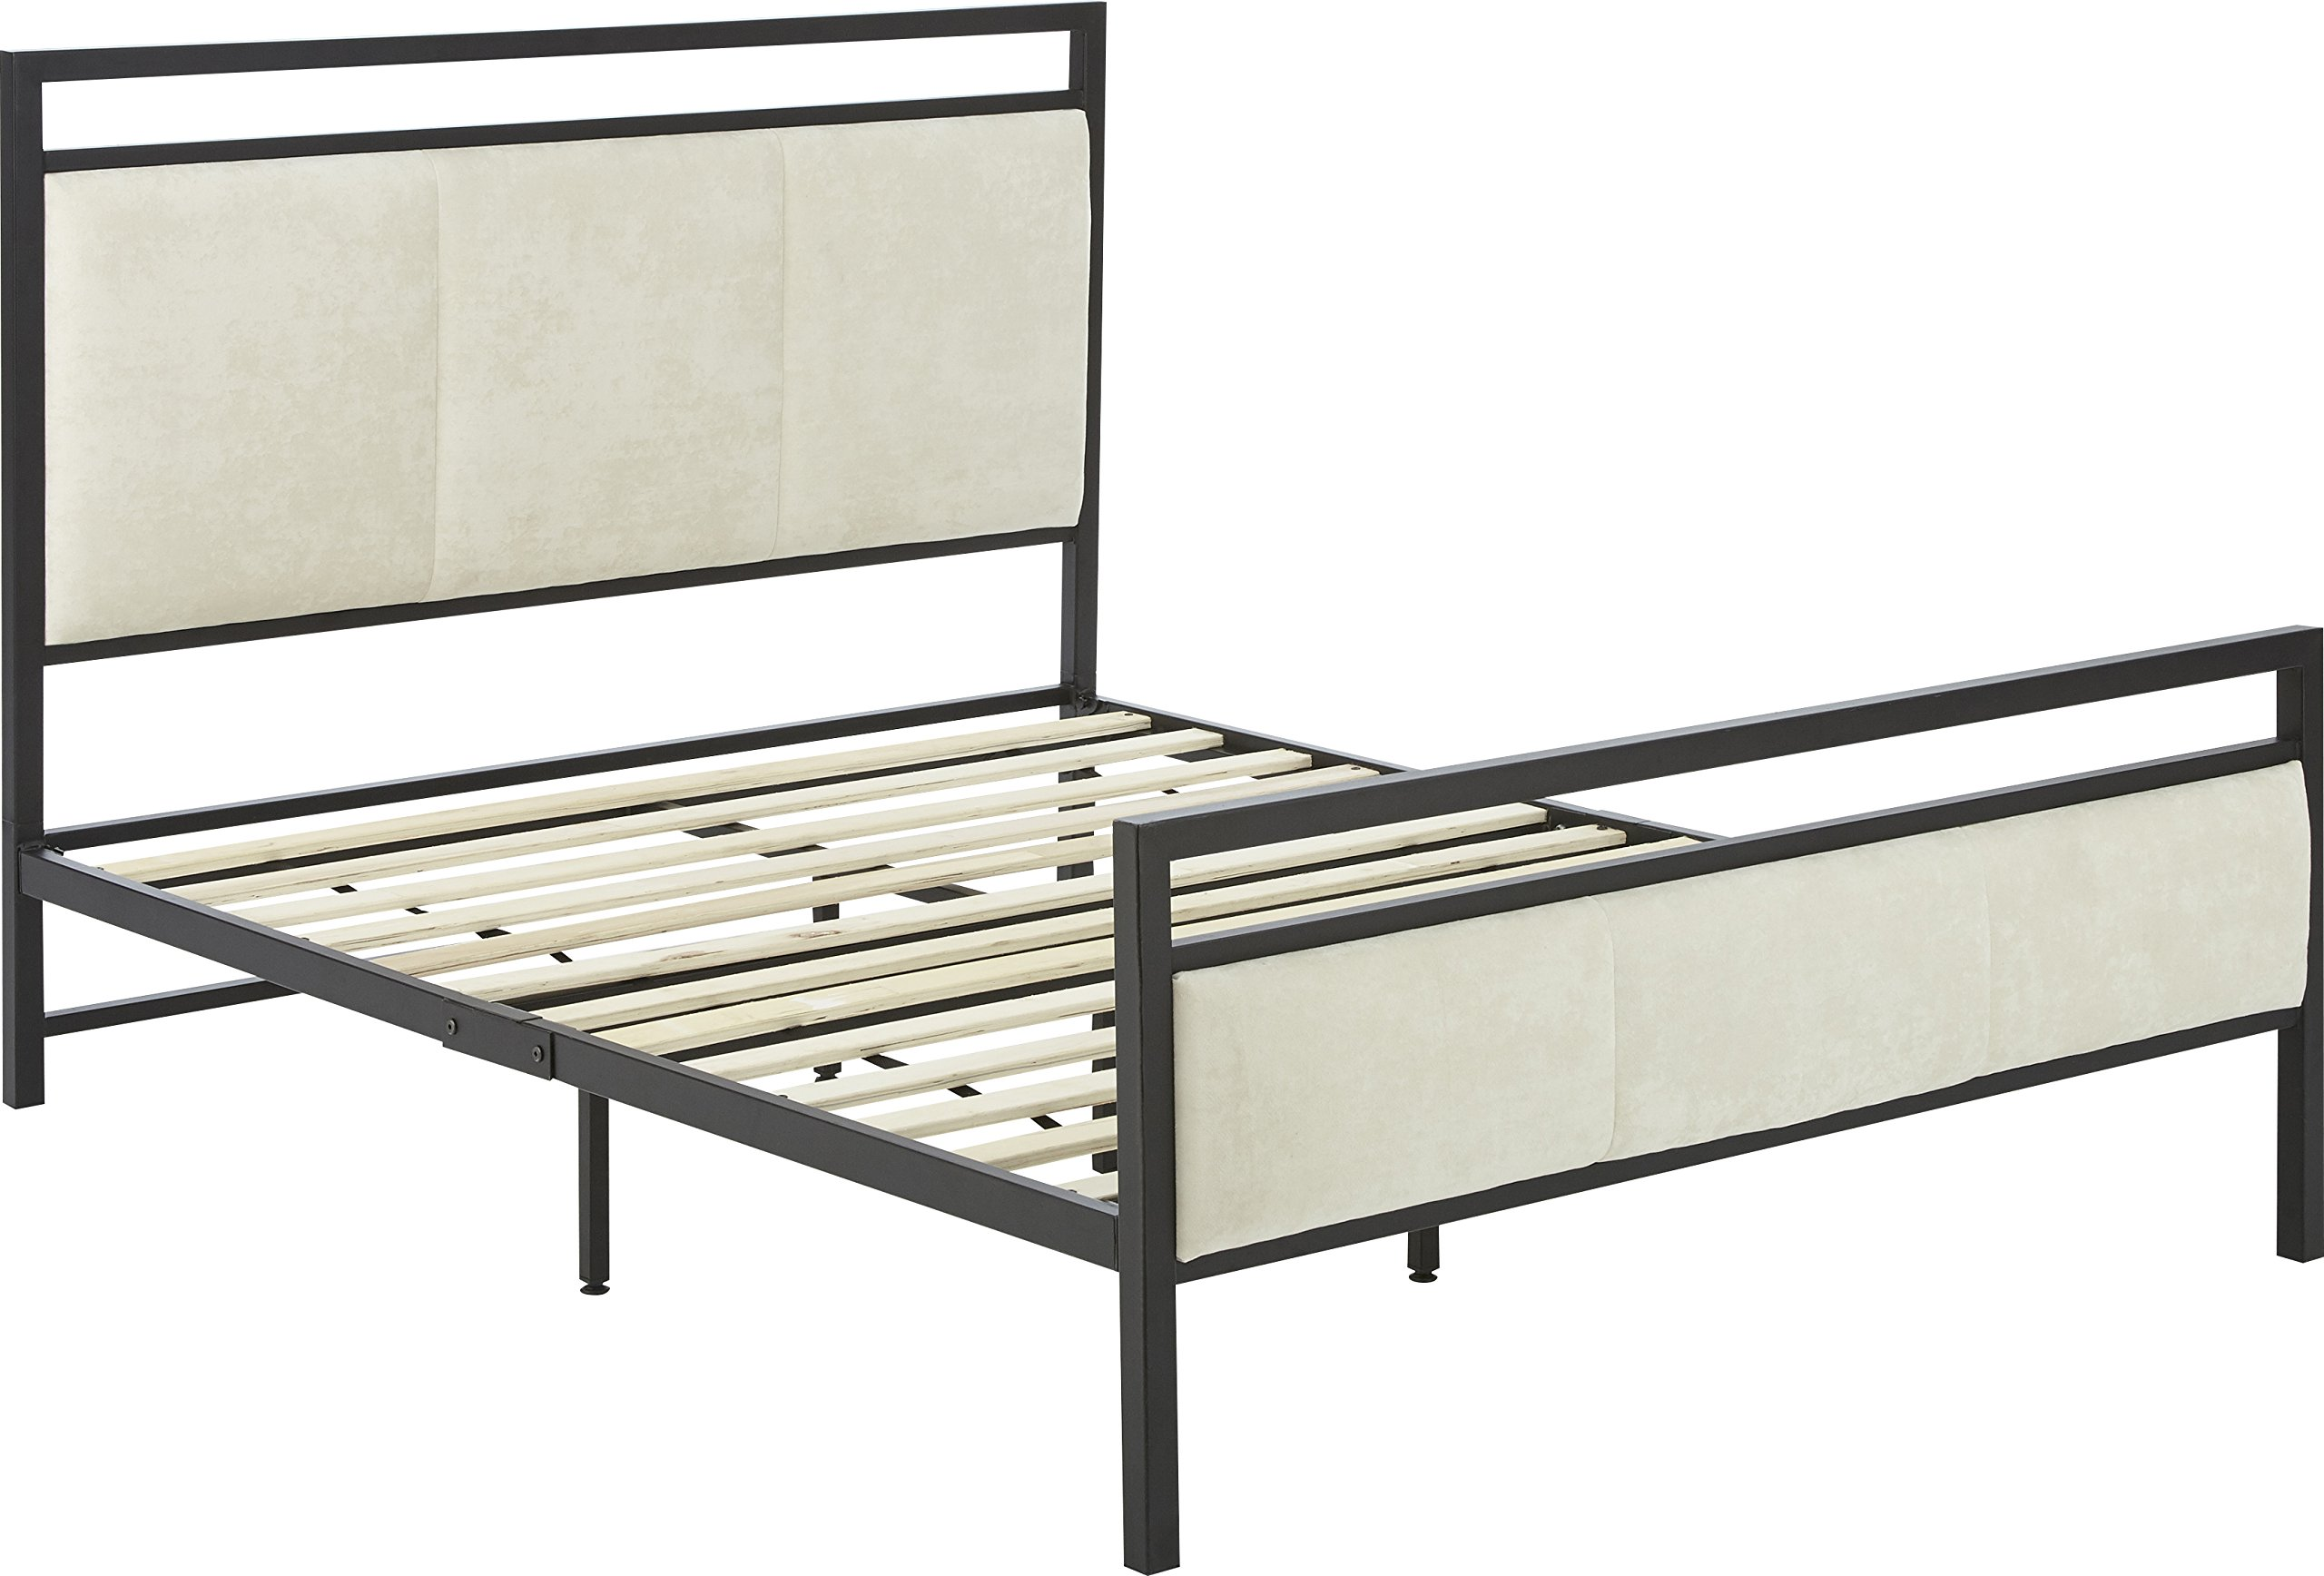 Flex Form Rosetta Metal Platform Bed Frame / Mattress Foundation with Headboard and Footboard, Full